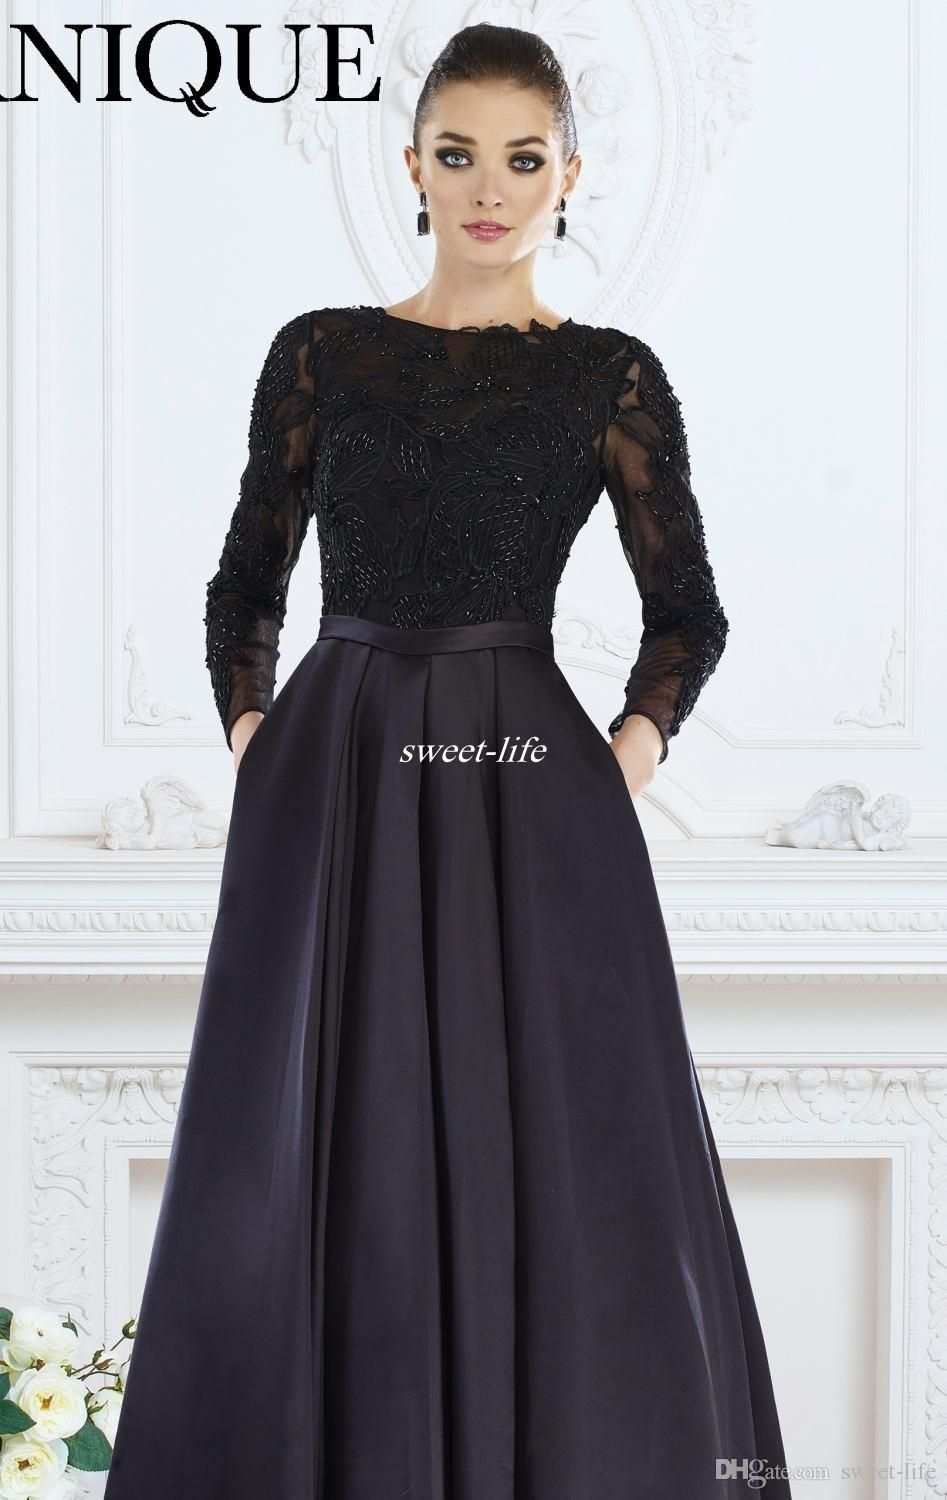 579490fdee93 Elegant Mother of the Bride Dresses with Pockets Beading Bateau Neck A-Line  Satin Ruffles Sash Custom Made 2016 Long Sleeve Evening Dresses